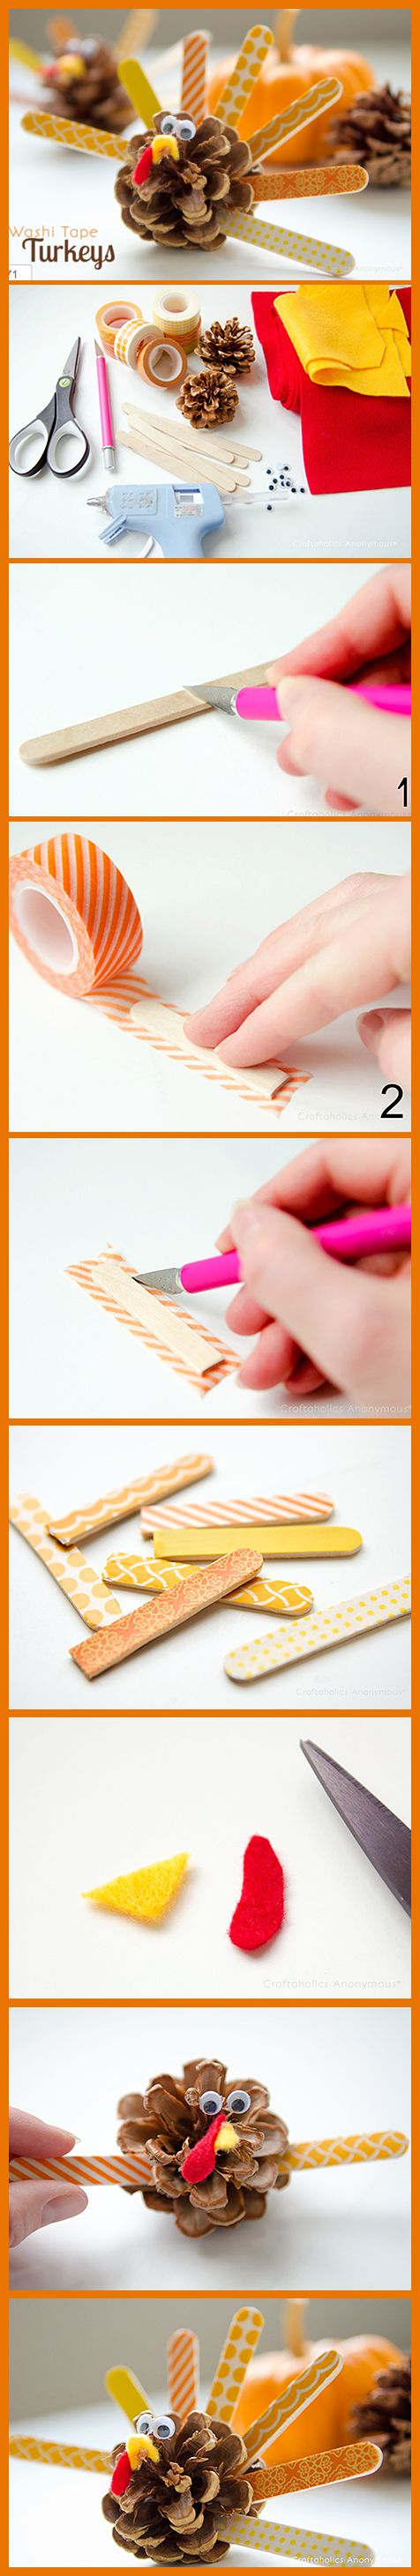 Washi Tape Pinecone Turkeys Tutorial: #kids #thanksgiving #turkey #tutorial #craft #reuse #recycle #diy #holiday #pinecone http://www.craftaholicsanonymous.net/washi-tape-pinecone-turkeys